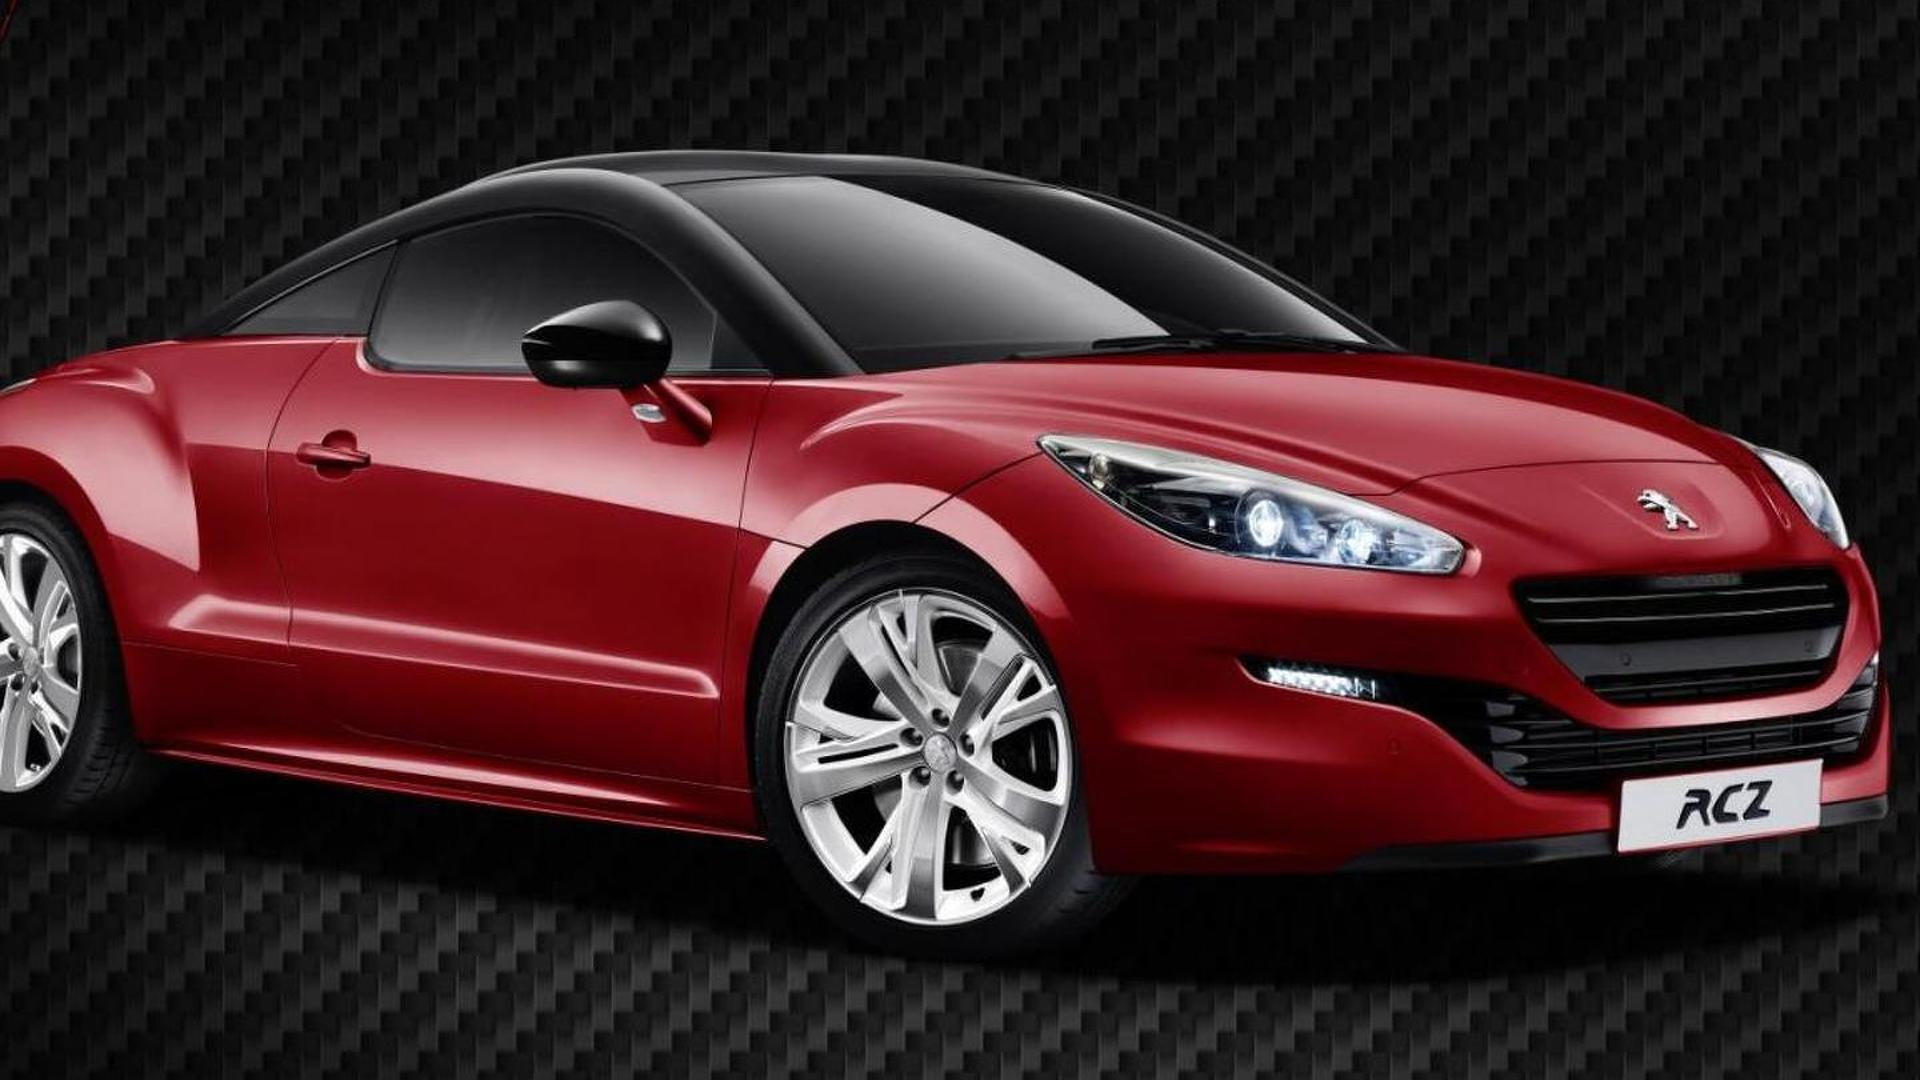 Peugeot RCZ Red Carbon announced for the U.K.